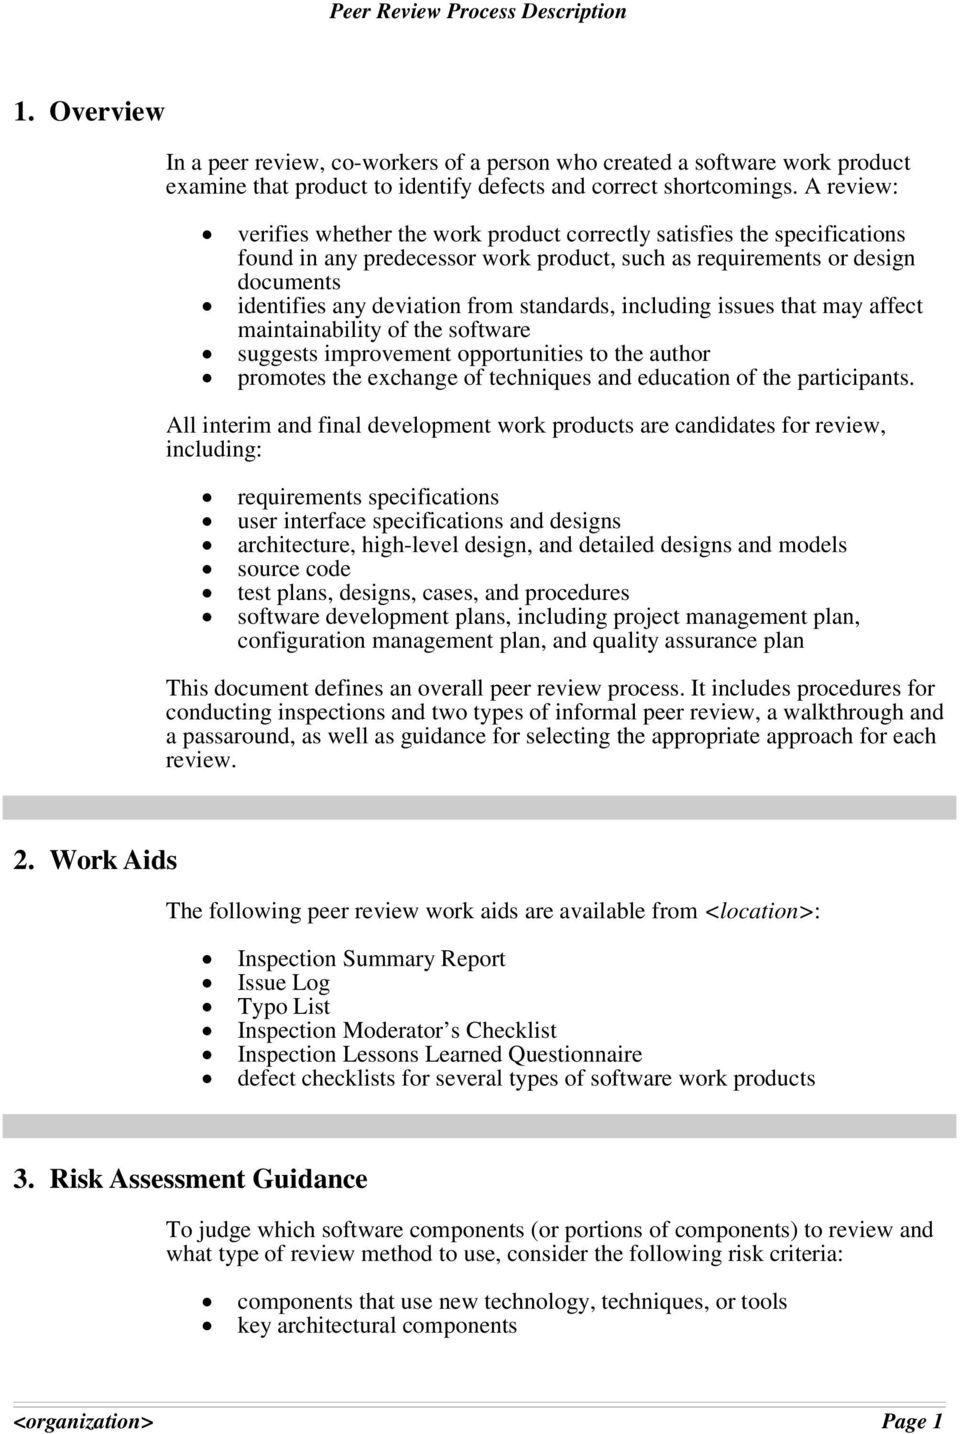 standards, including issues that may affect maintainability of the software suggests improvement opportunities to the author promotes the exchange of techniques and education of the participants.